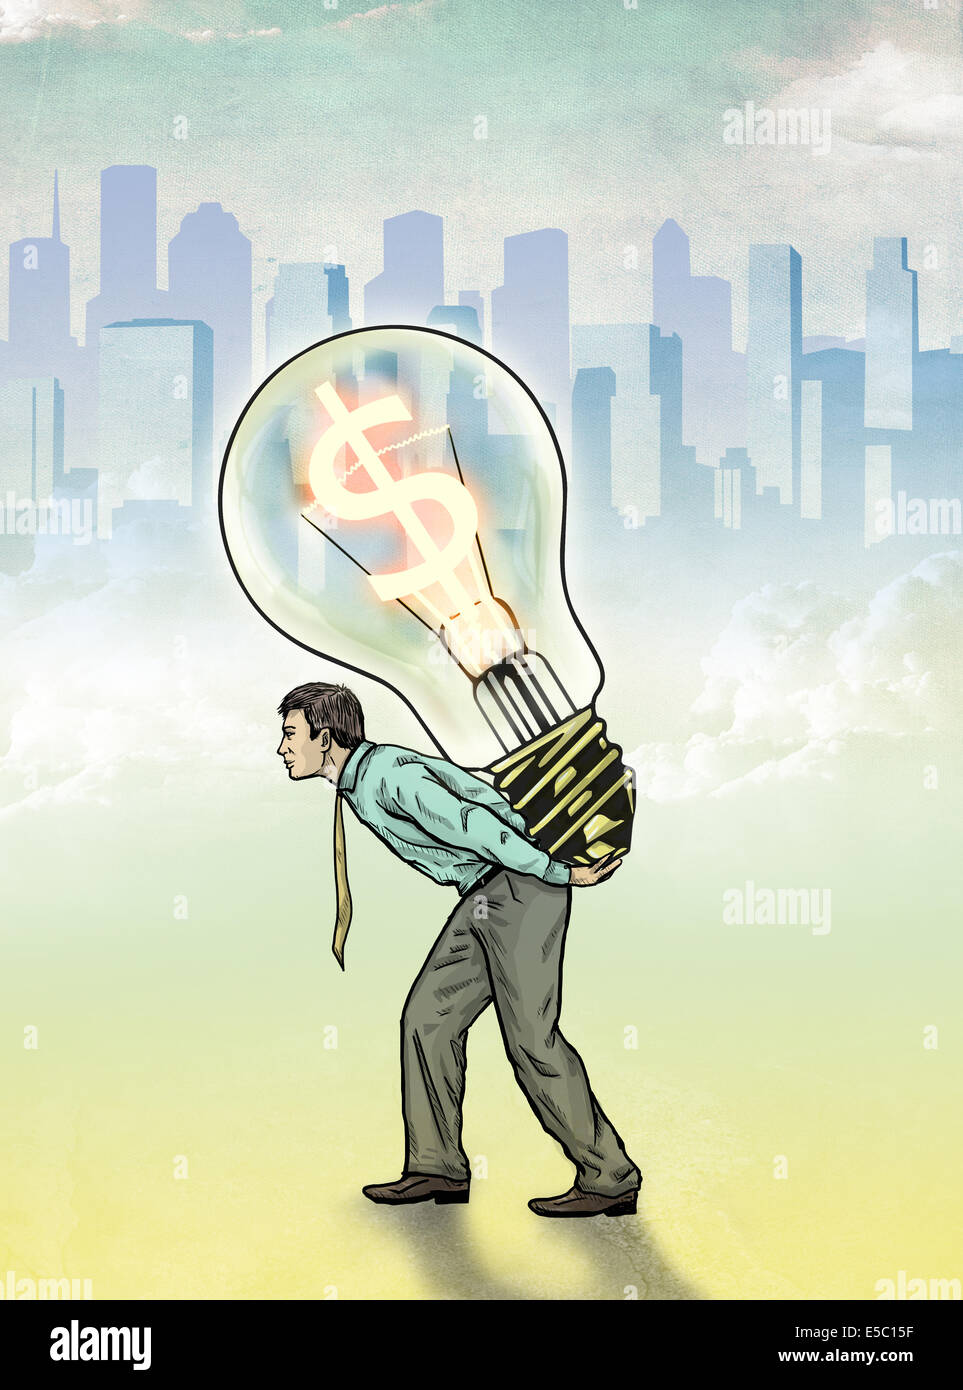 Image d'illustration de businessman carrying ampoule avec dollar symbole représentant le profit Photo Stock